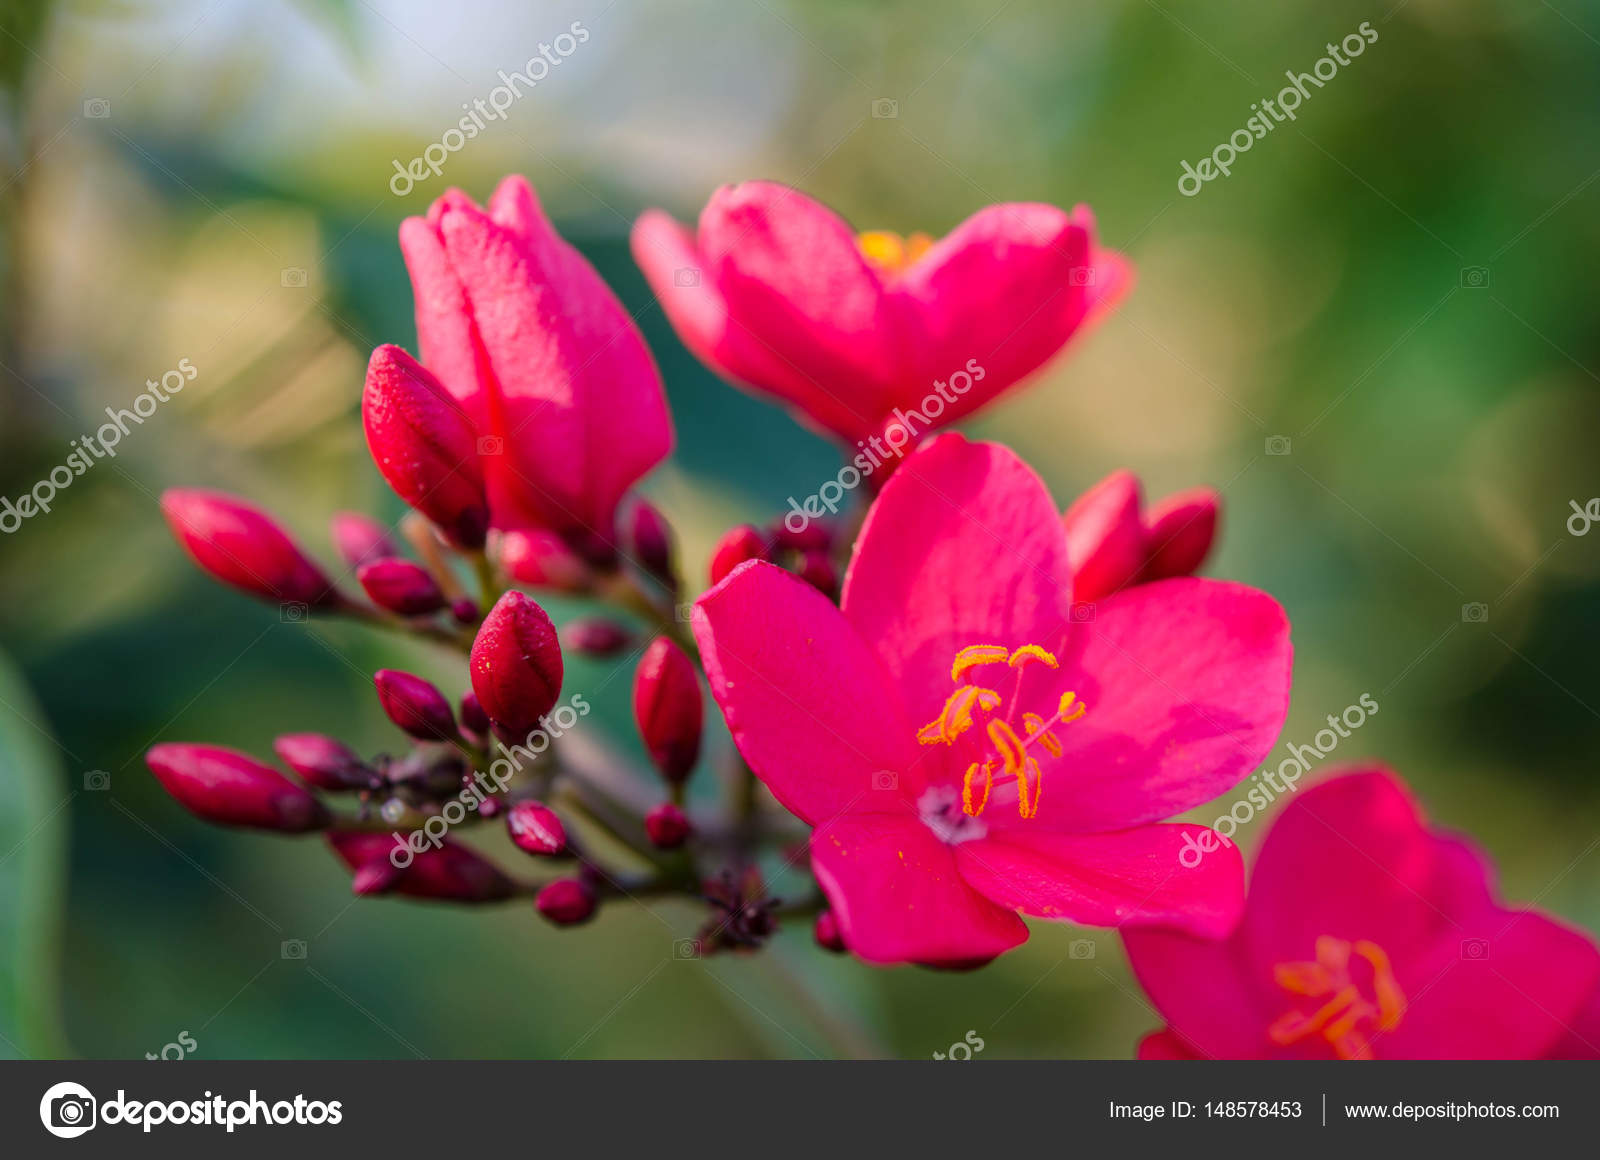 Flowering bushes with pink flowers stock photo soyka564 148578453 flowering bushes with pink flowers stock photo mightylinksfo